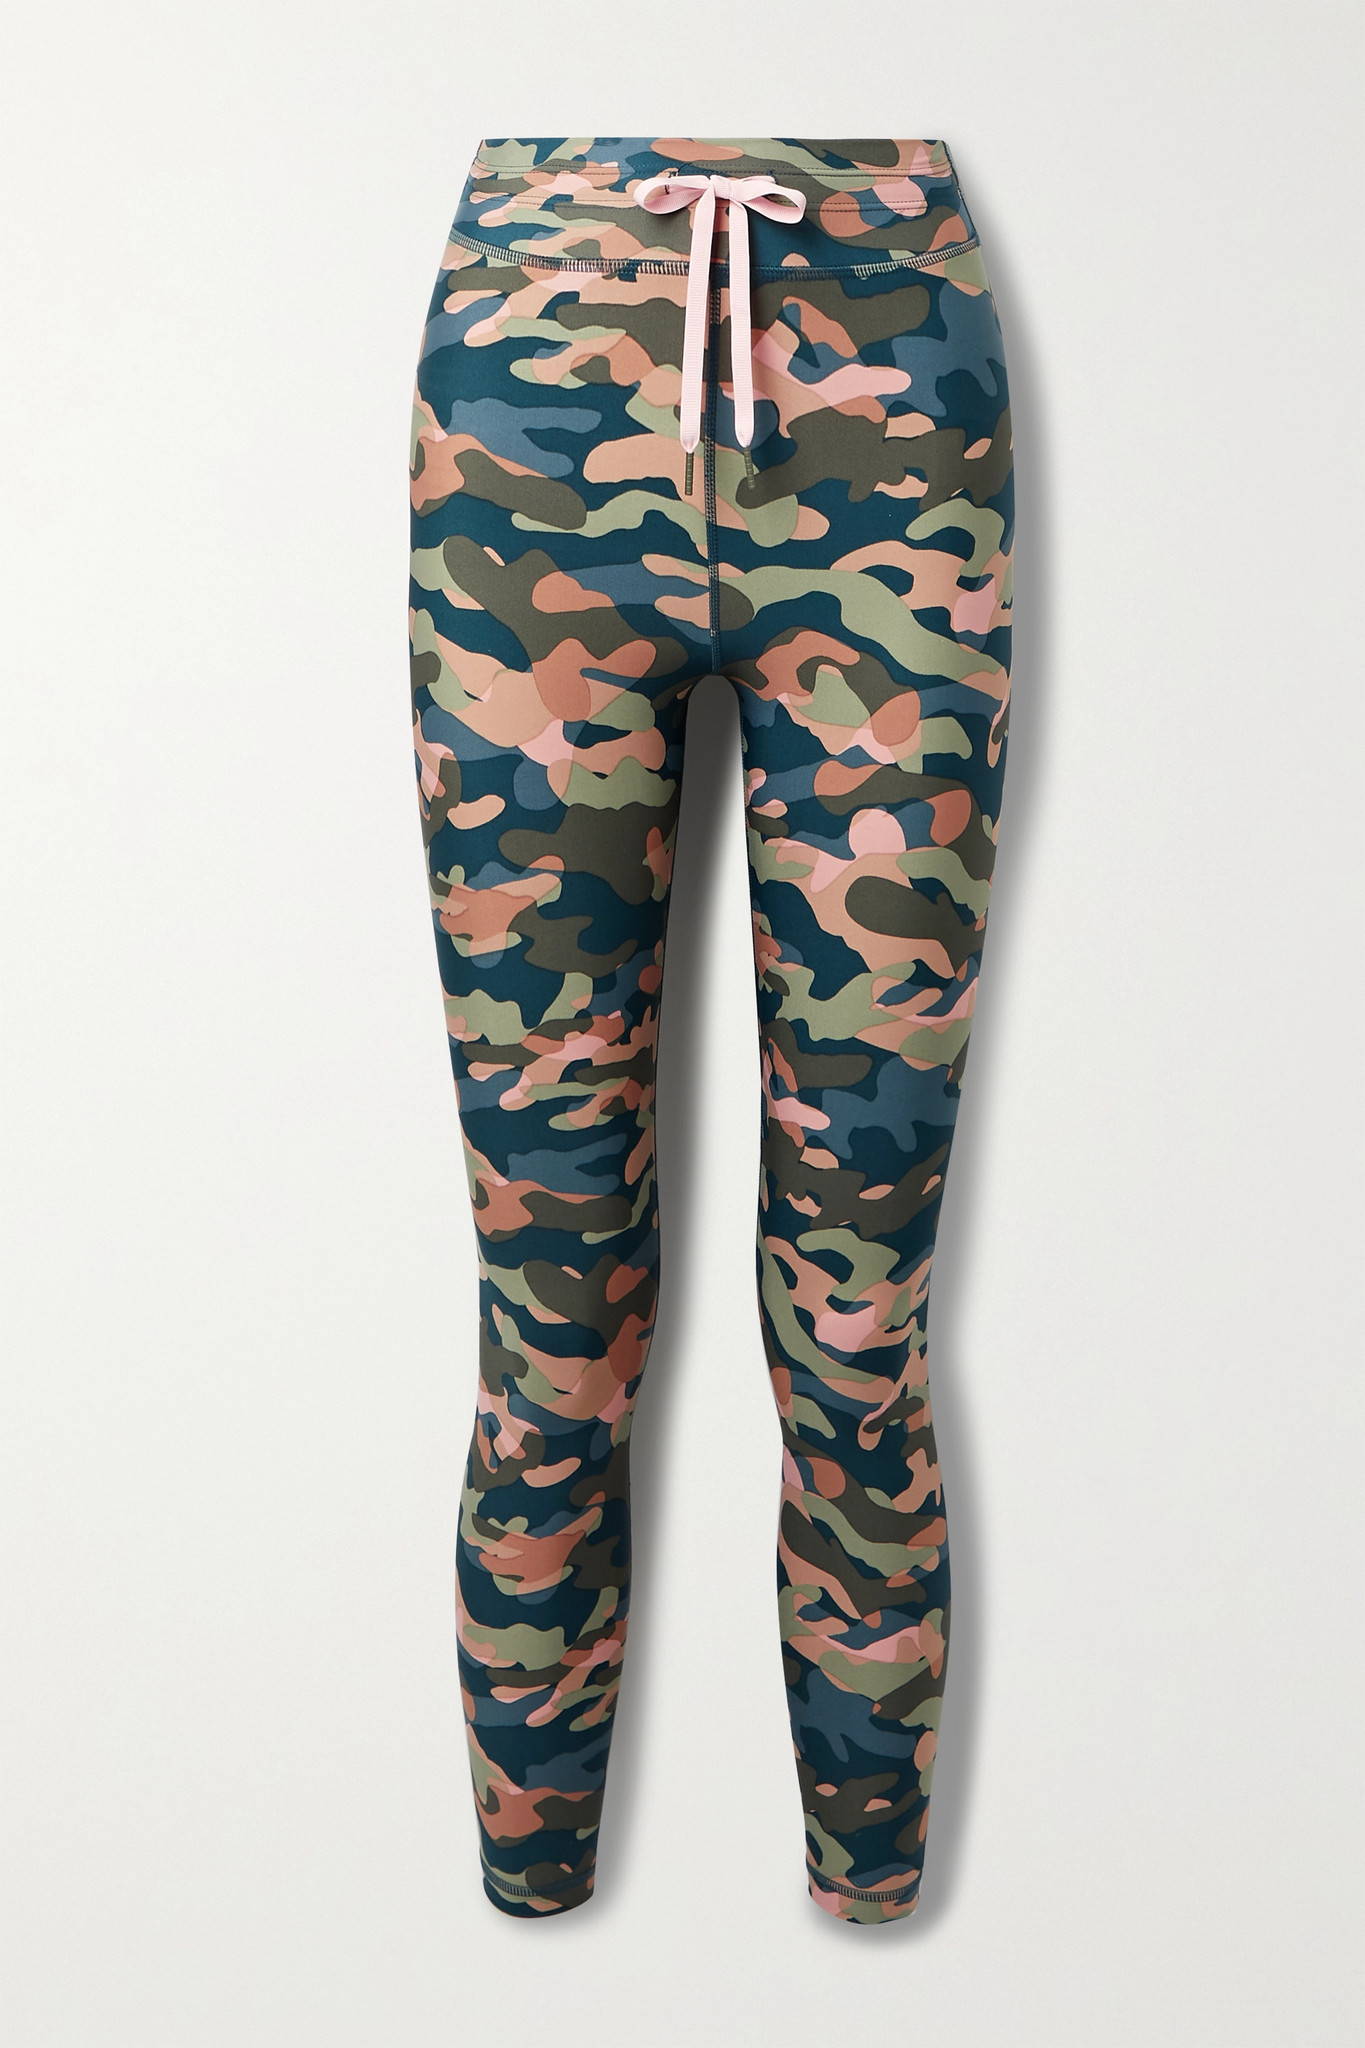 THE UPSIDE - Himalaya Camouflage-print Stretch Leggings - Green - x small